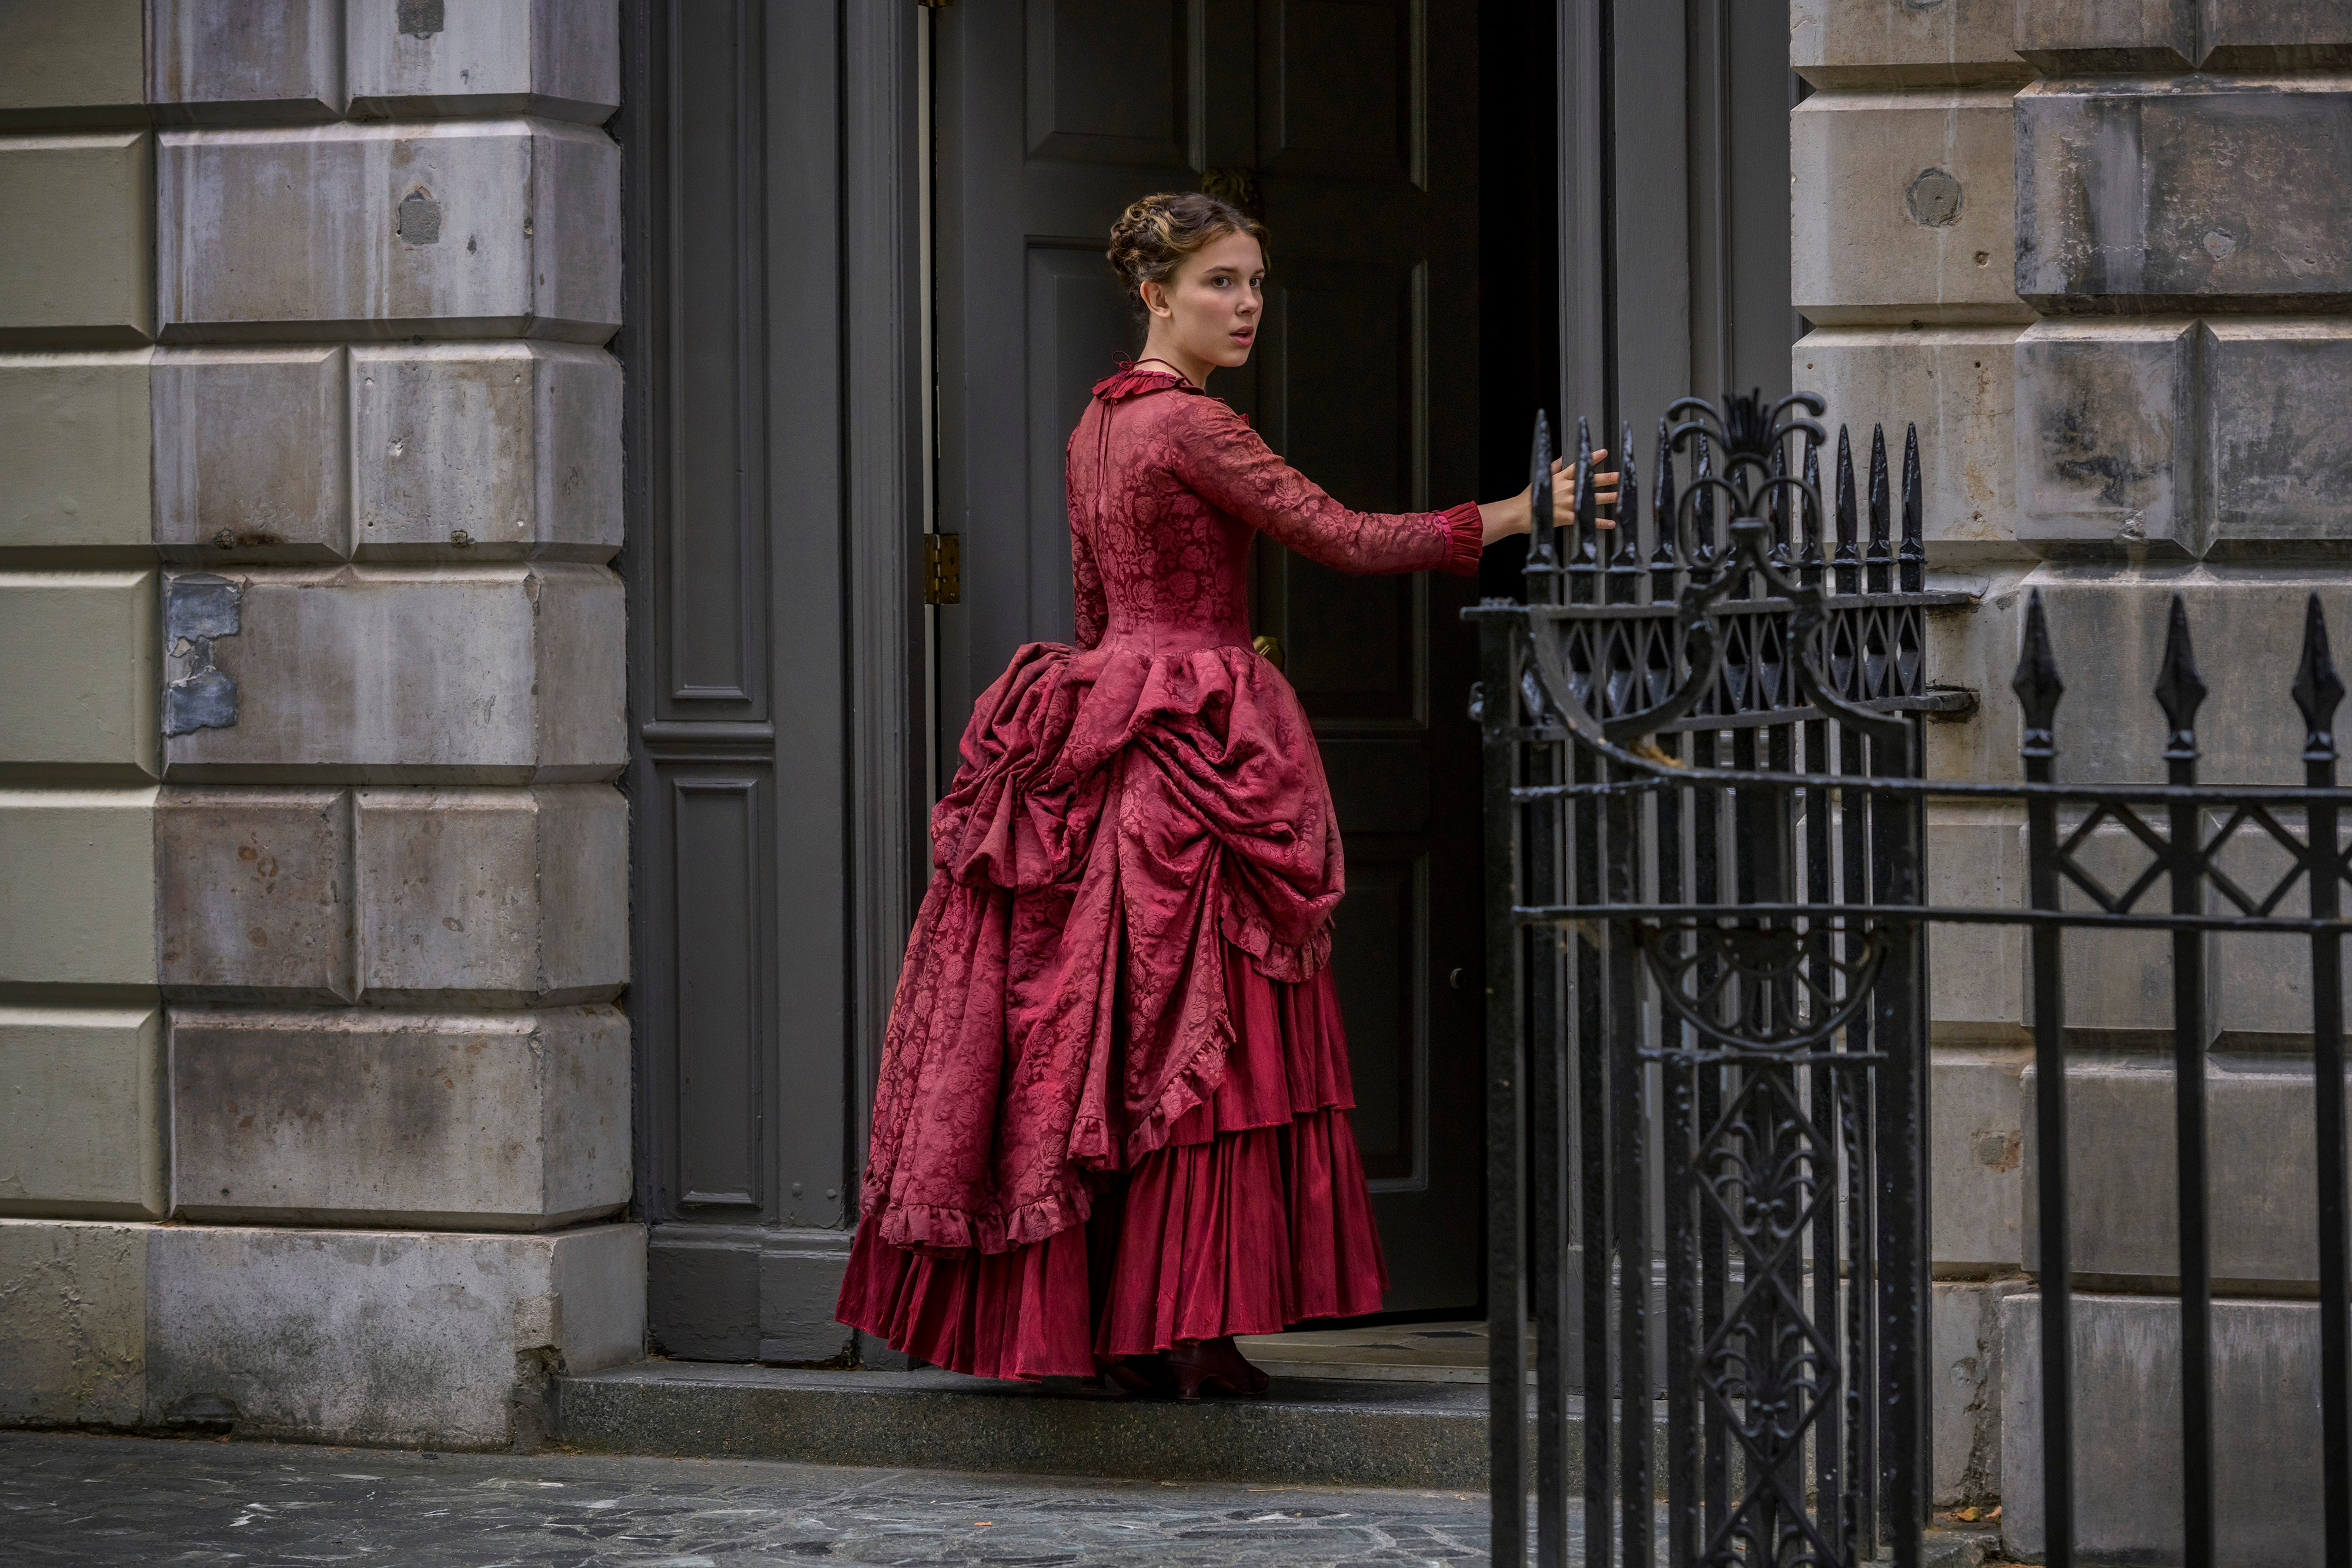 Millie Bobby Brown wearing a Victorian gown with cage-like hip modulator in the movie Enola Holmes